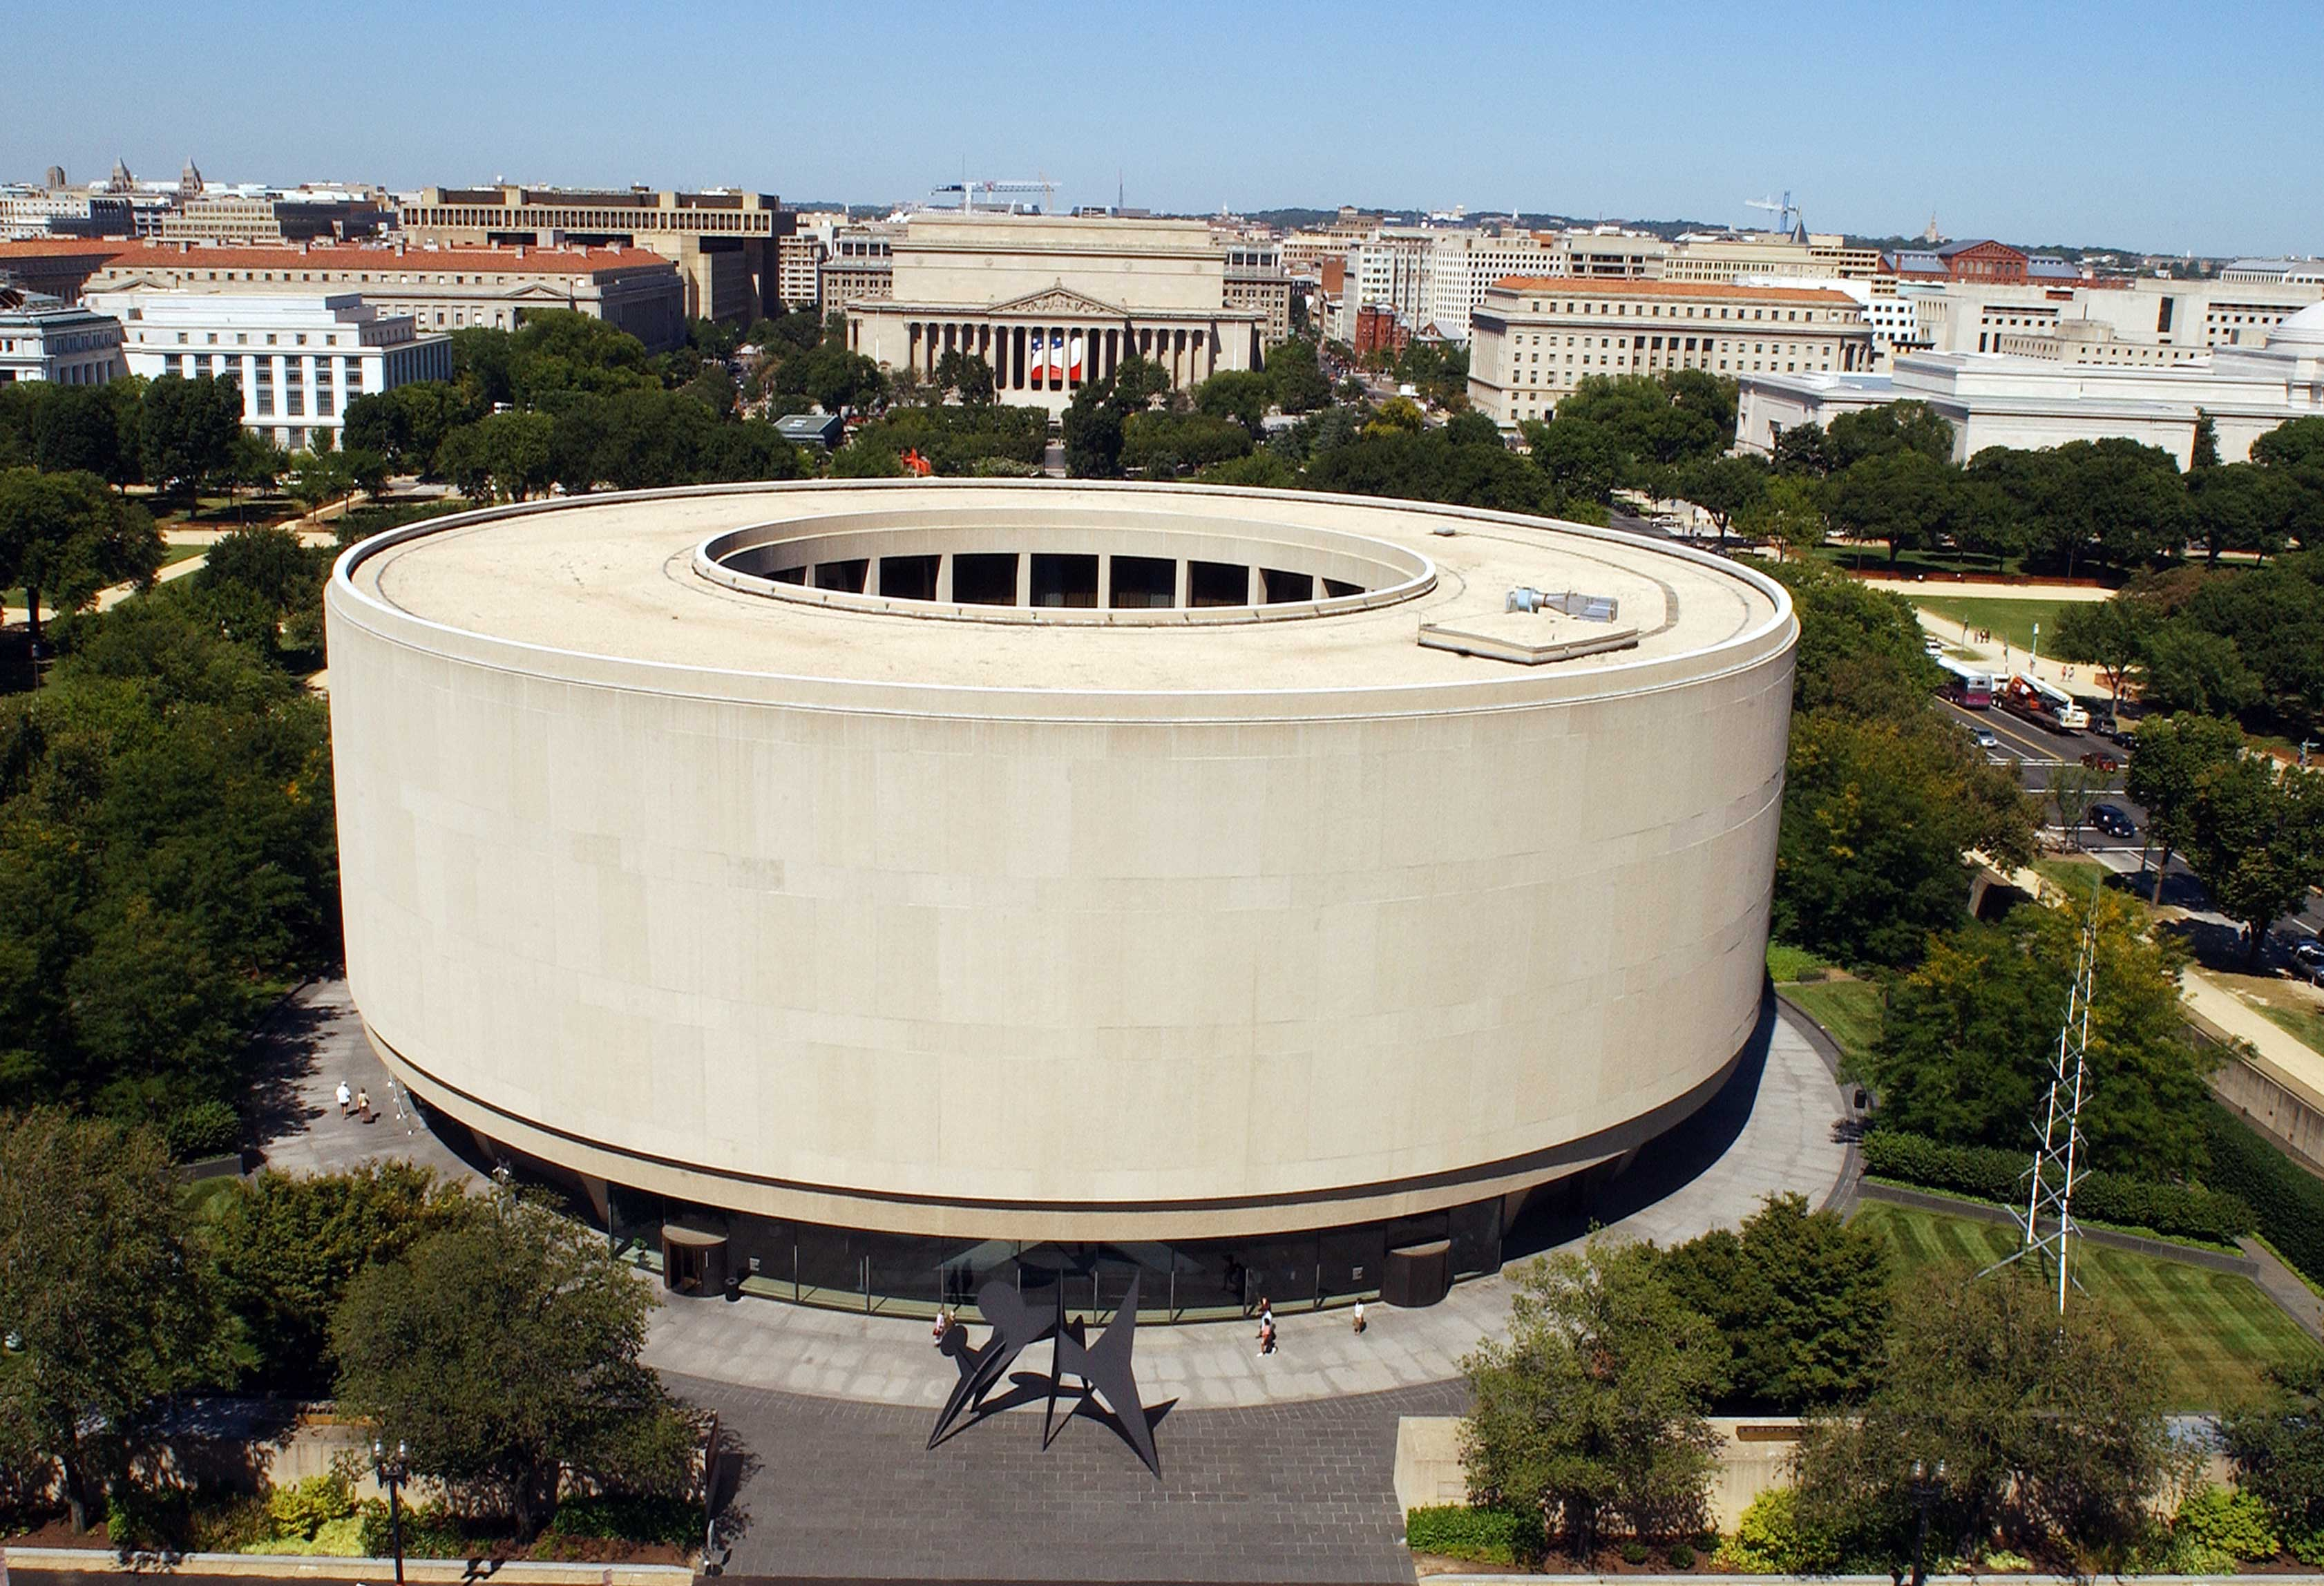 Smithsonian's Hirshhorn Museum and Sculpture Garden